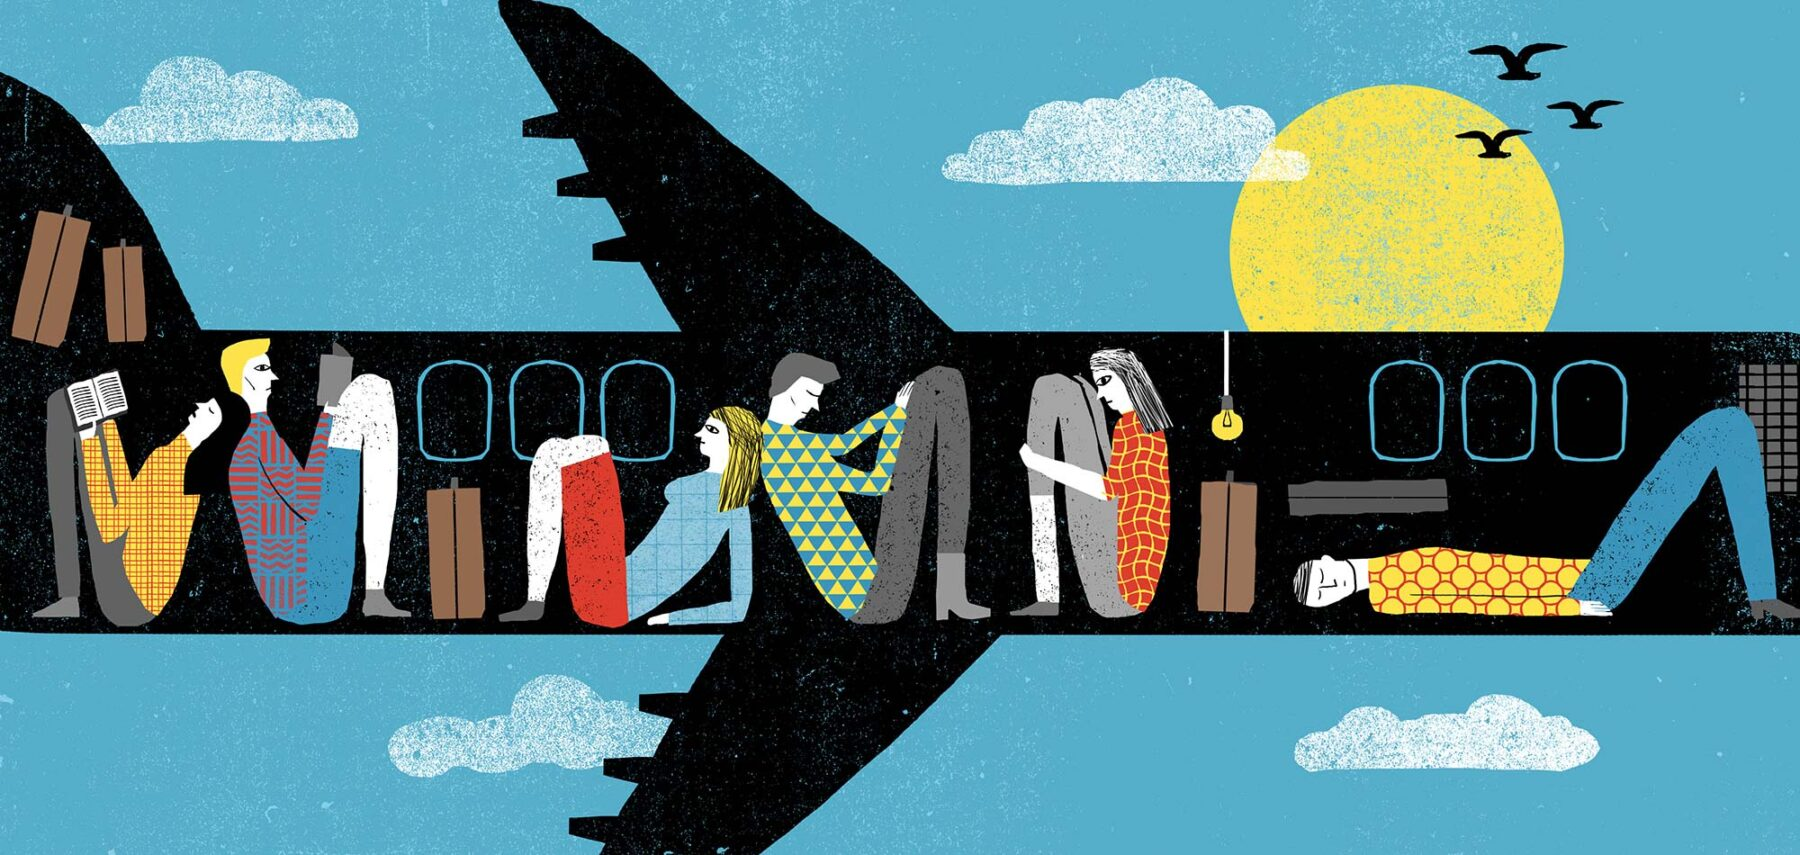 Plane - The New York Times